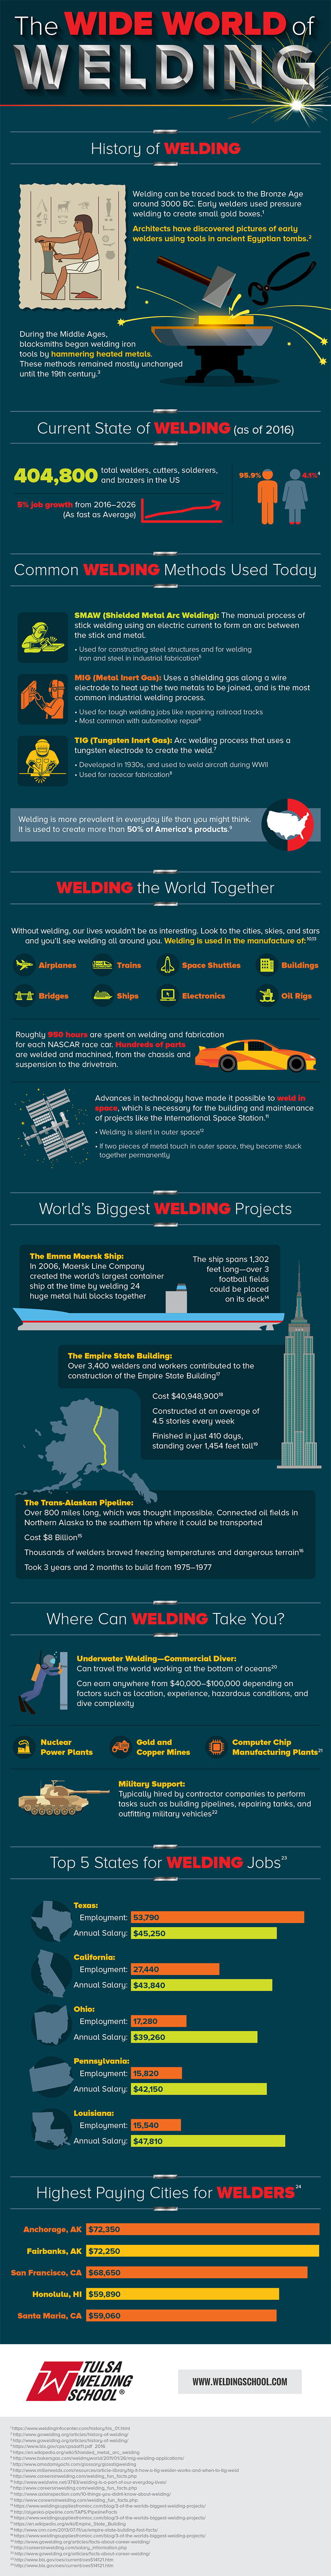 world of welding information facts